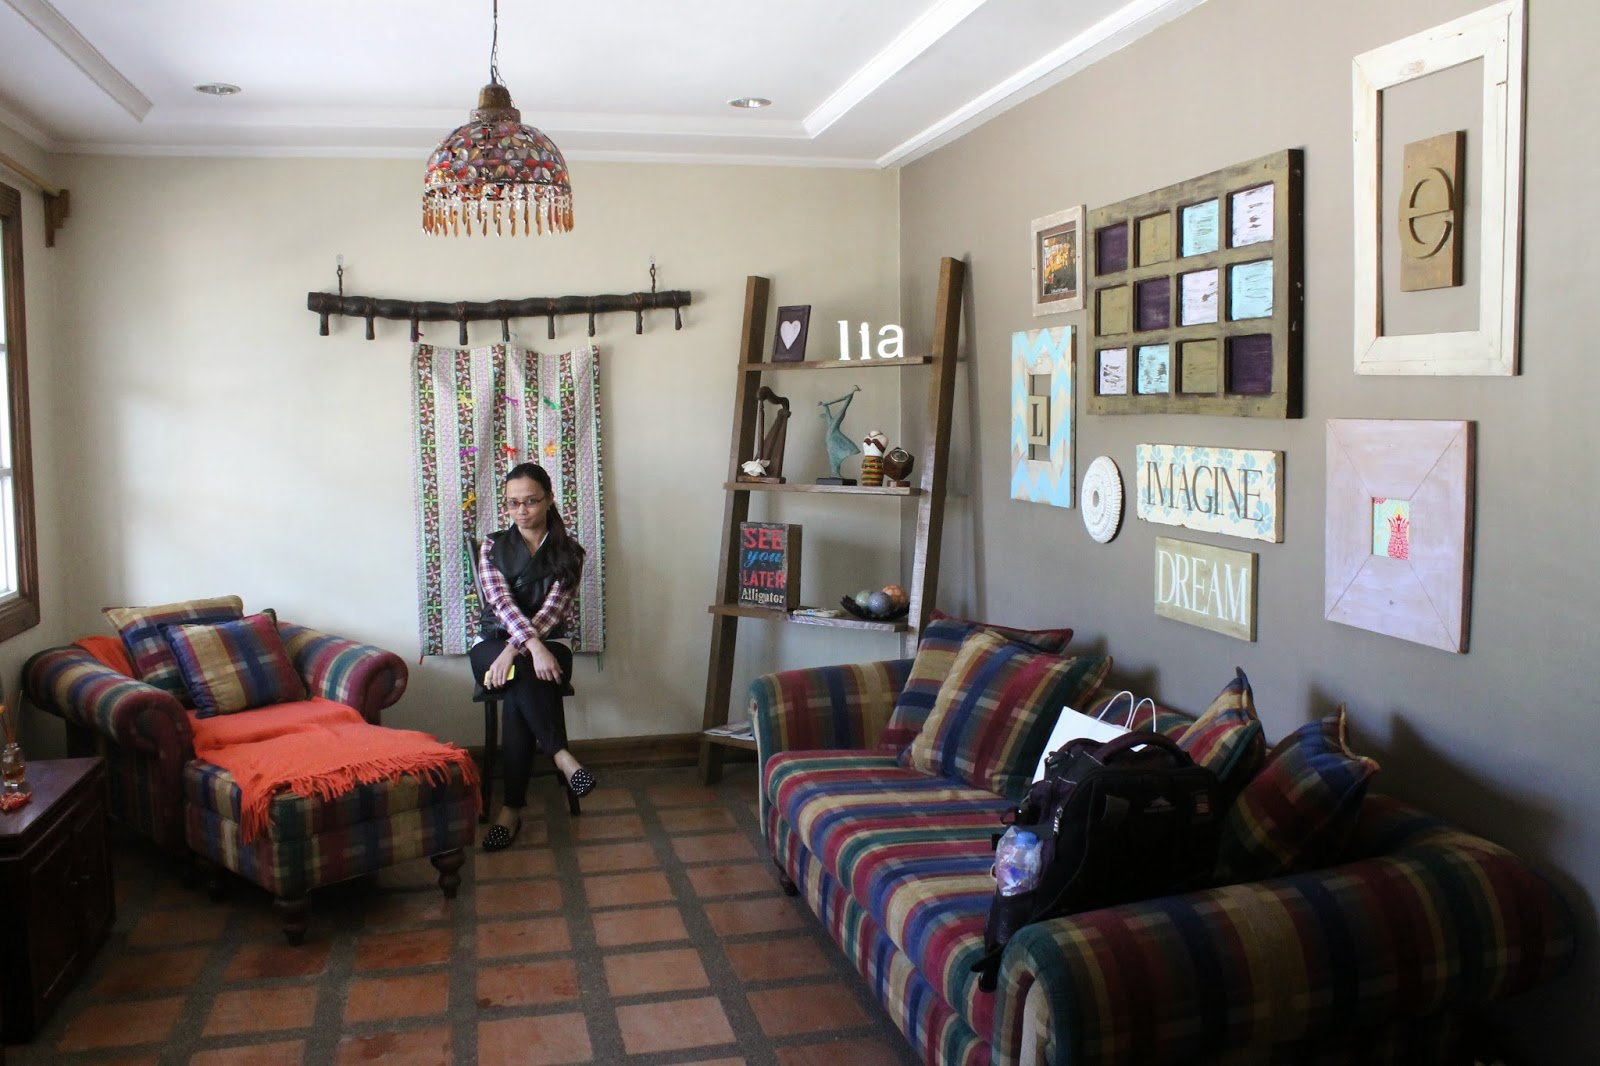 Enjoyable Lucias Bed And Breakfast Hidden Nook In Baguio City Be Carol Home Interior And Landscaping Ologienasavecom